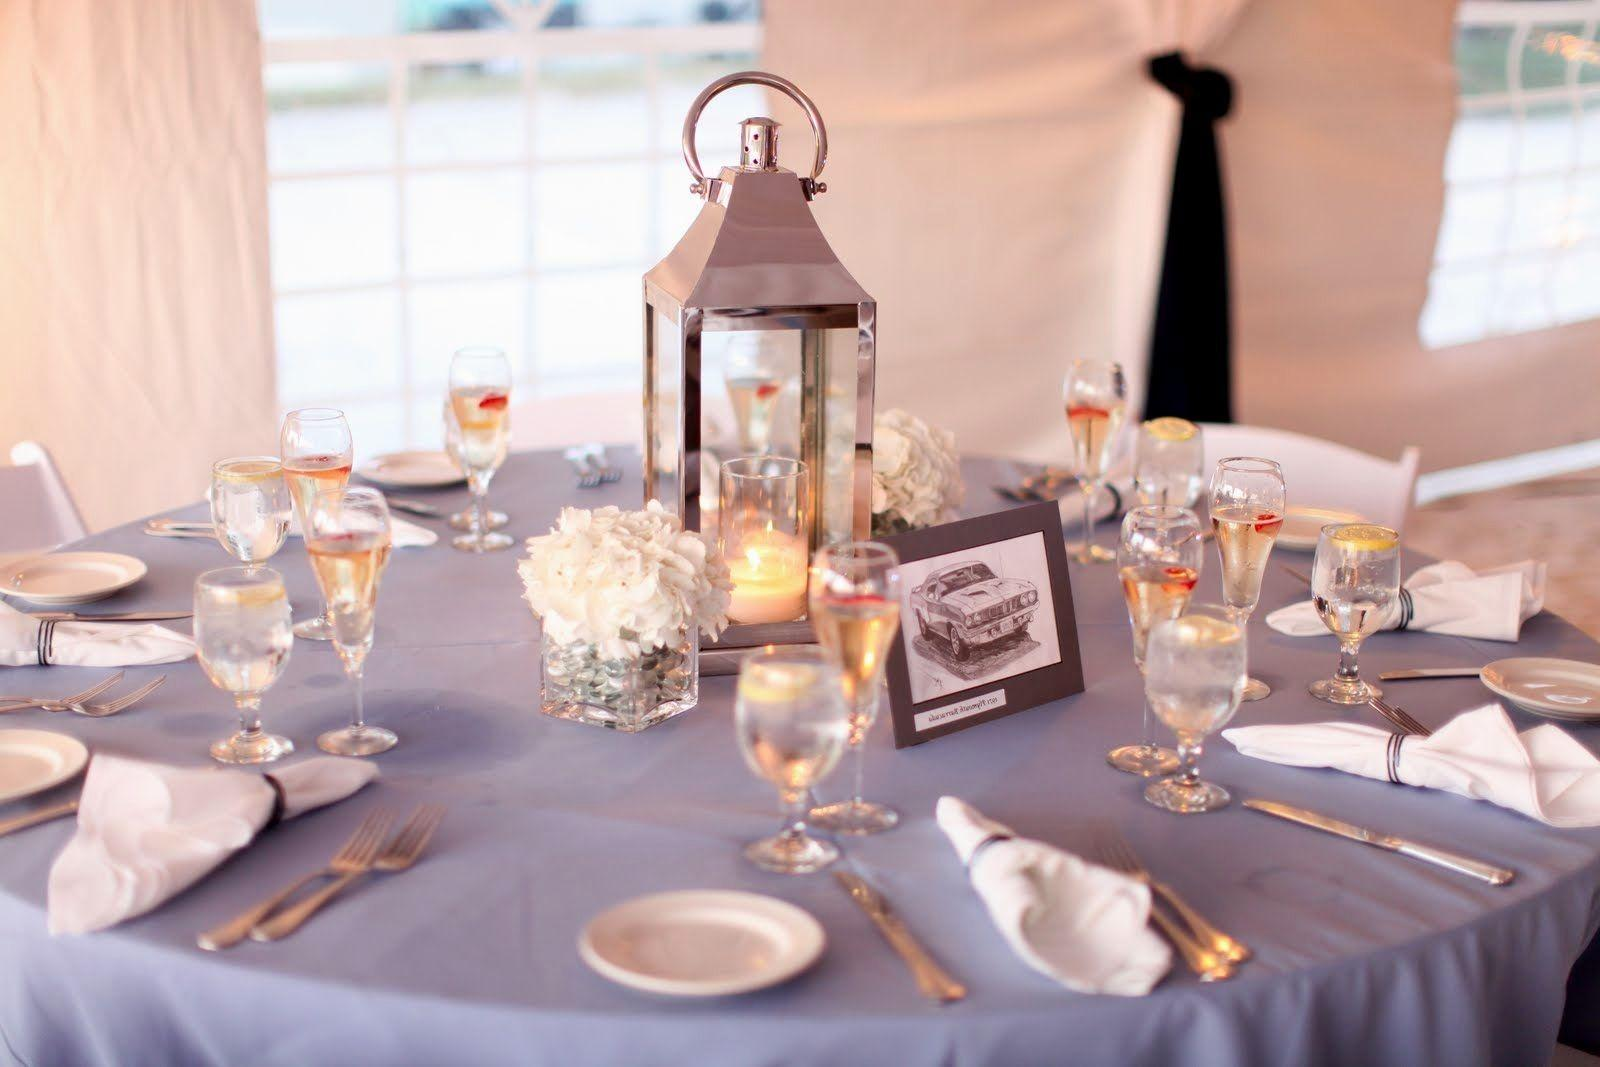 Really Awesome Wedding Table Decor Ideas That Look Elegant And